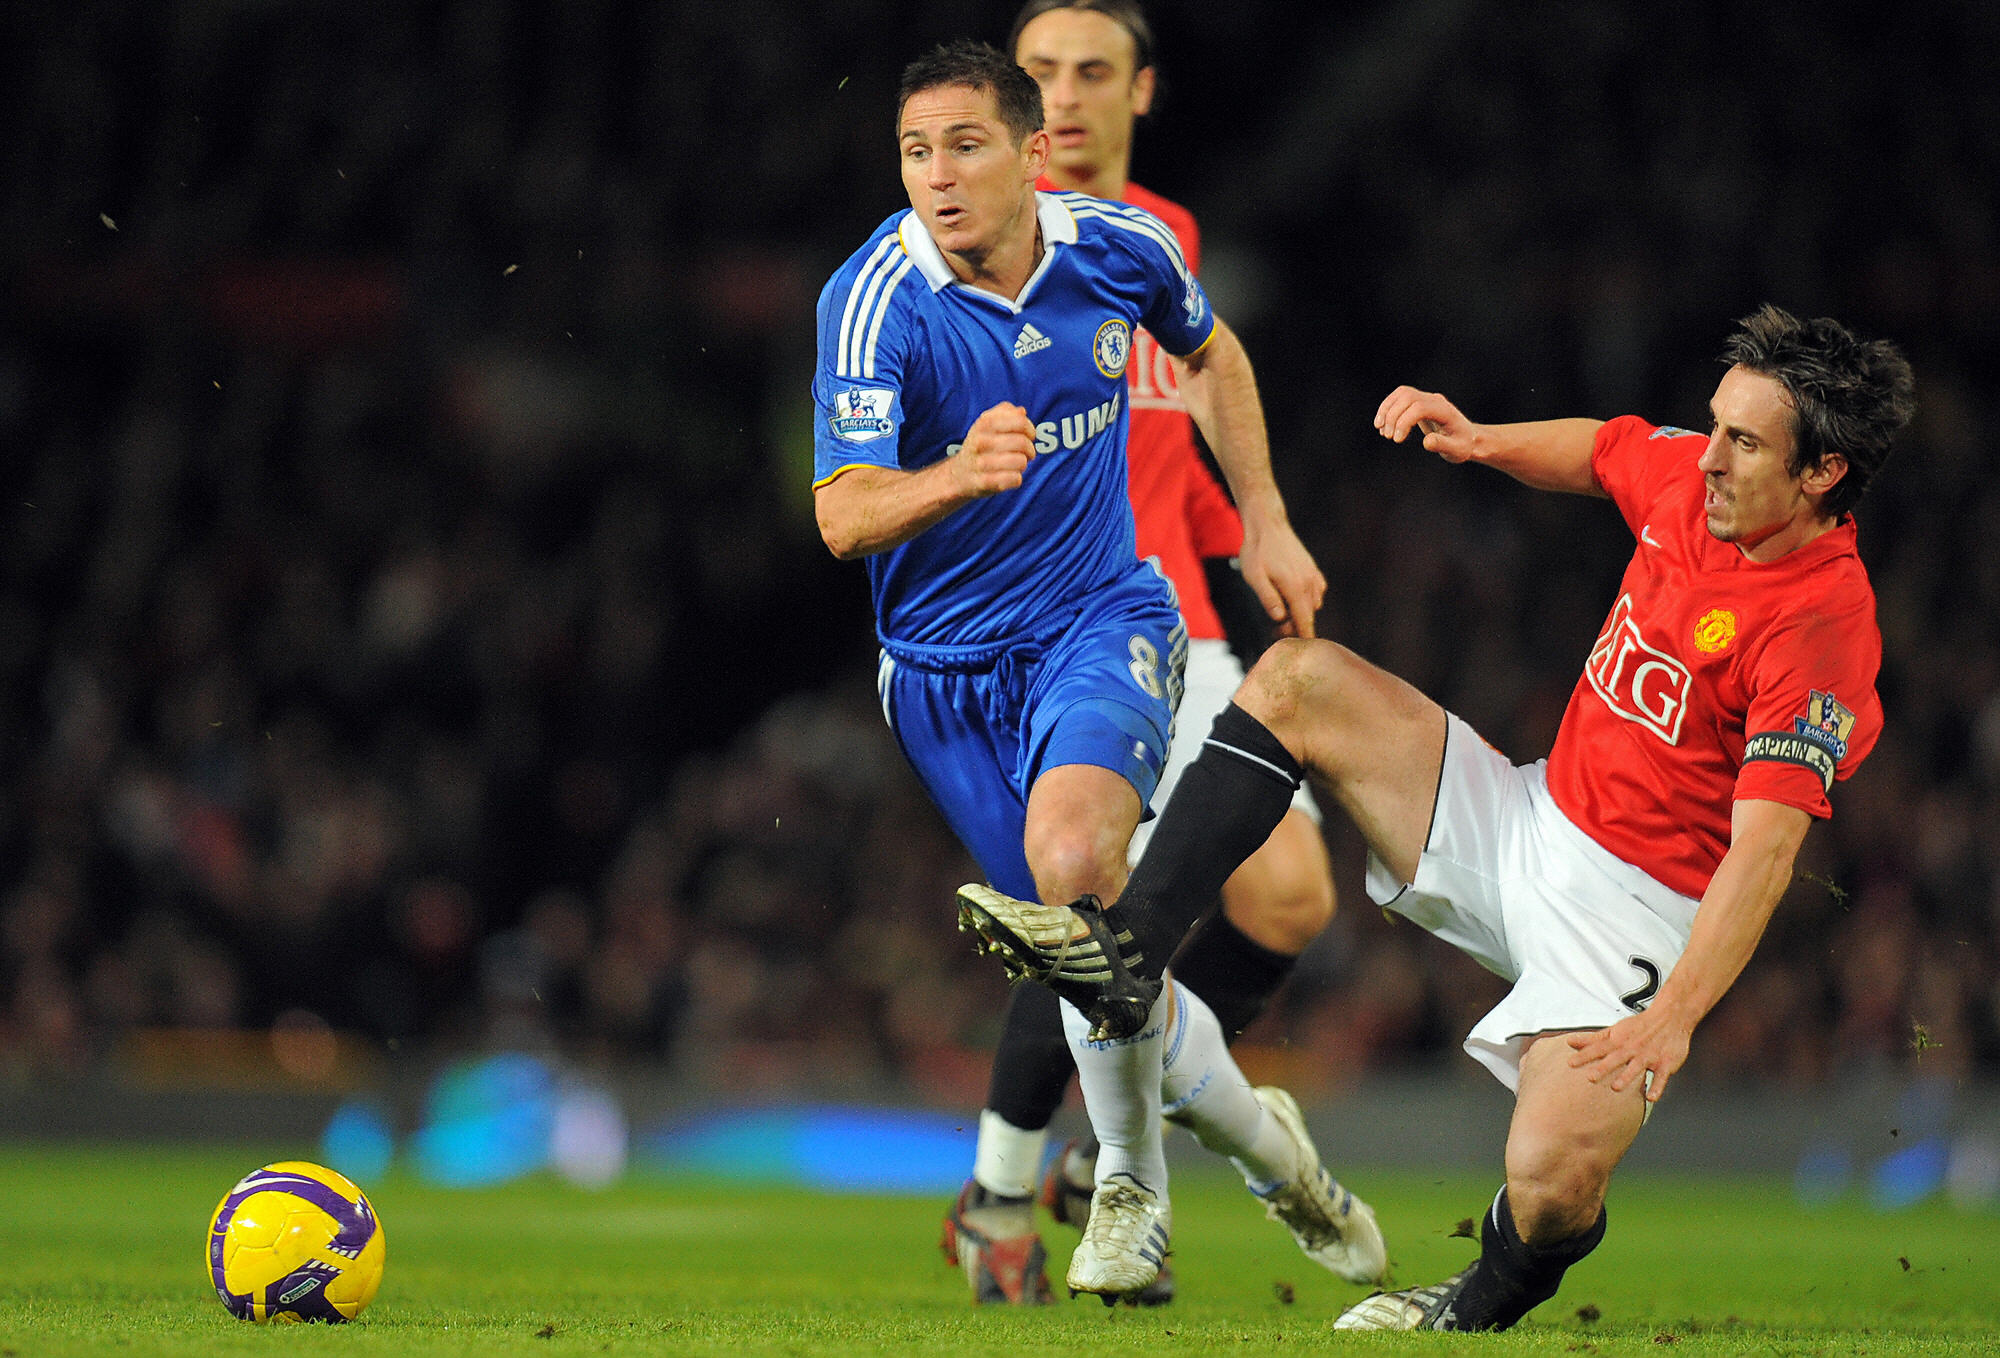 Gary Neville has hailed Frank Lampard (L) for his tactics in the 0-0 draw against Tottenham Hotspur. (GETTY Images)